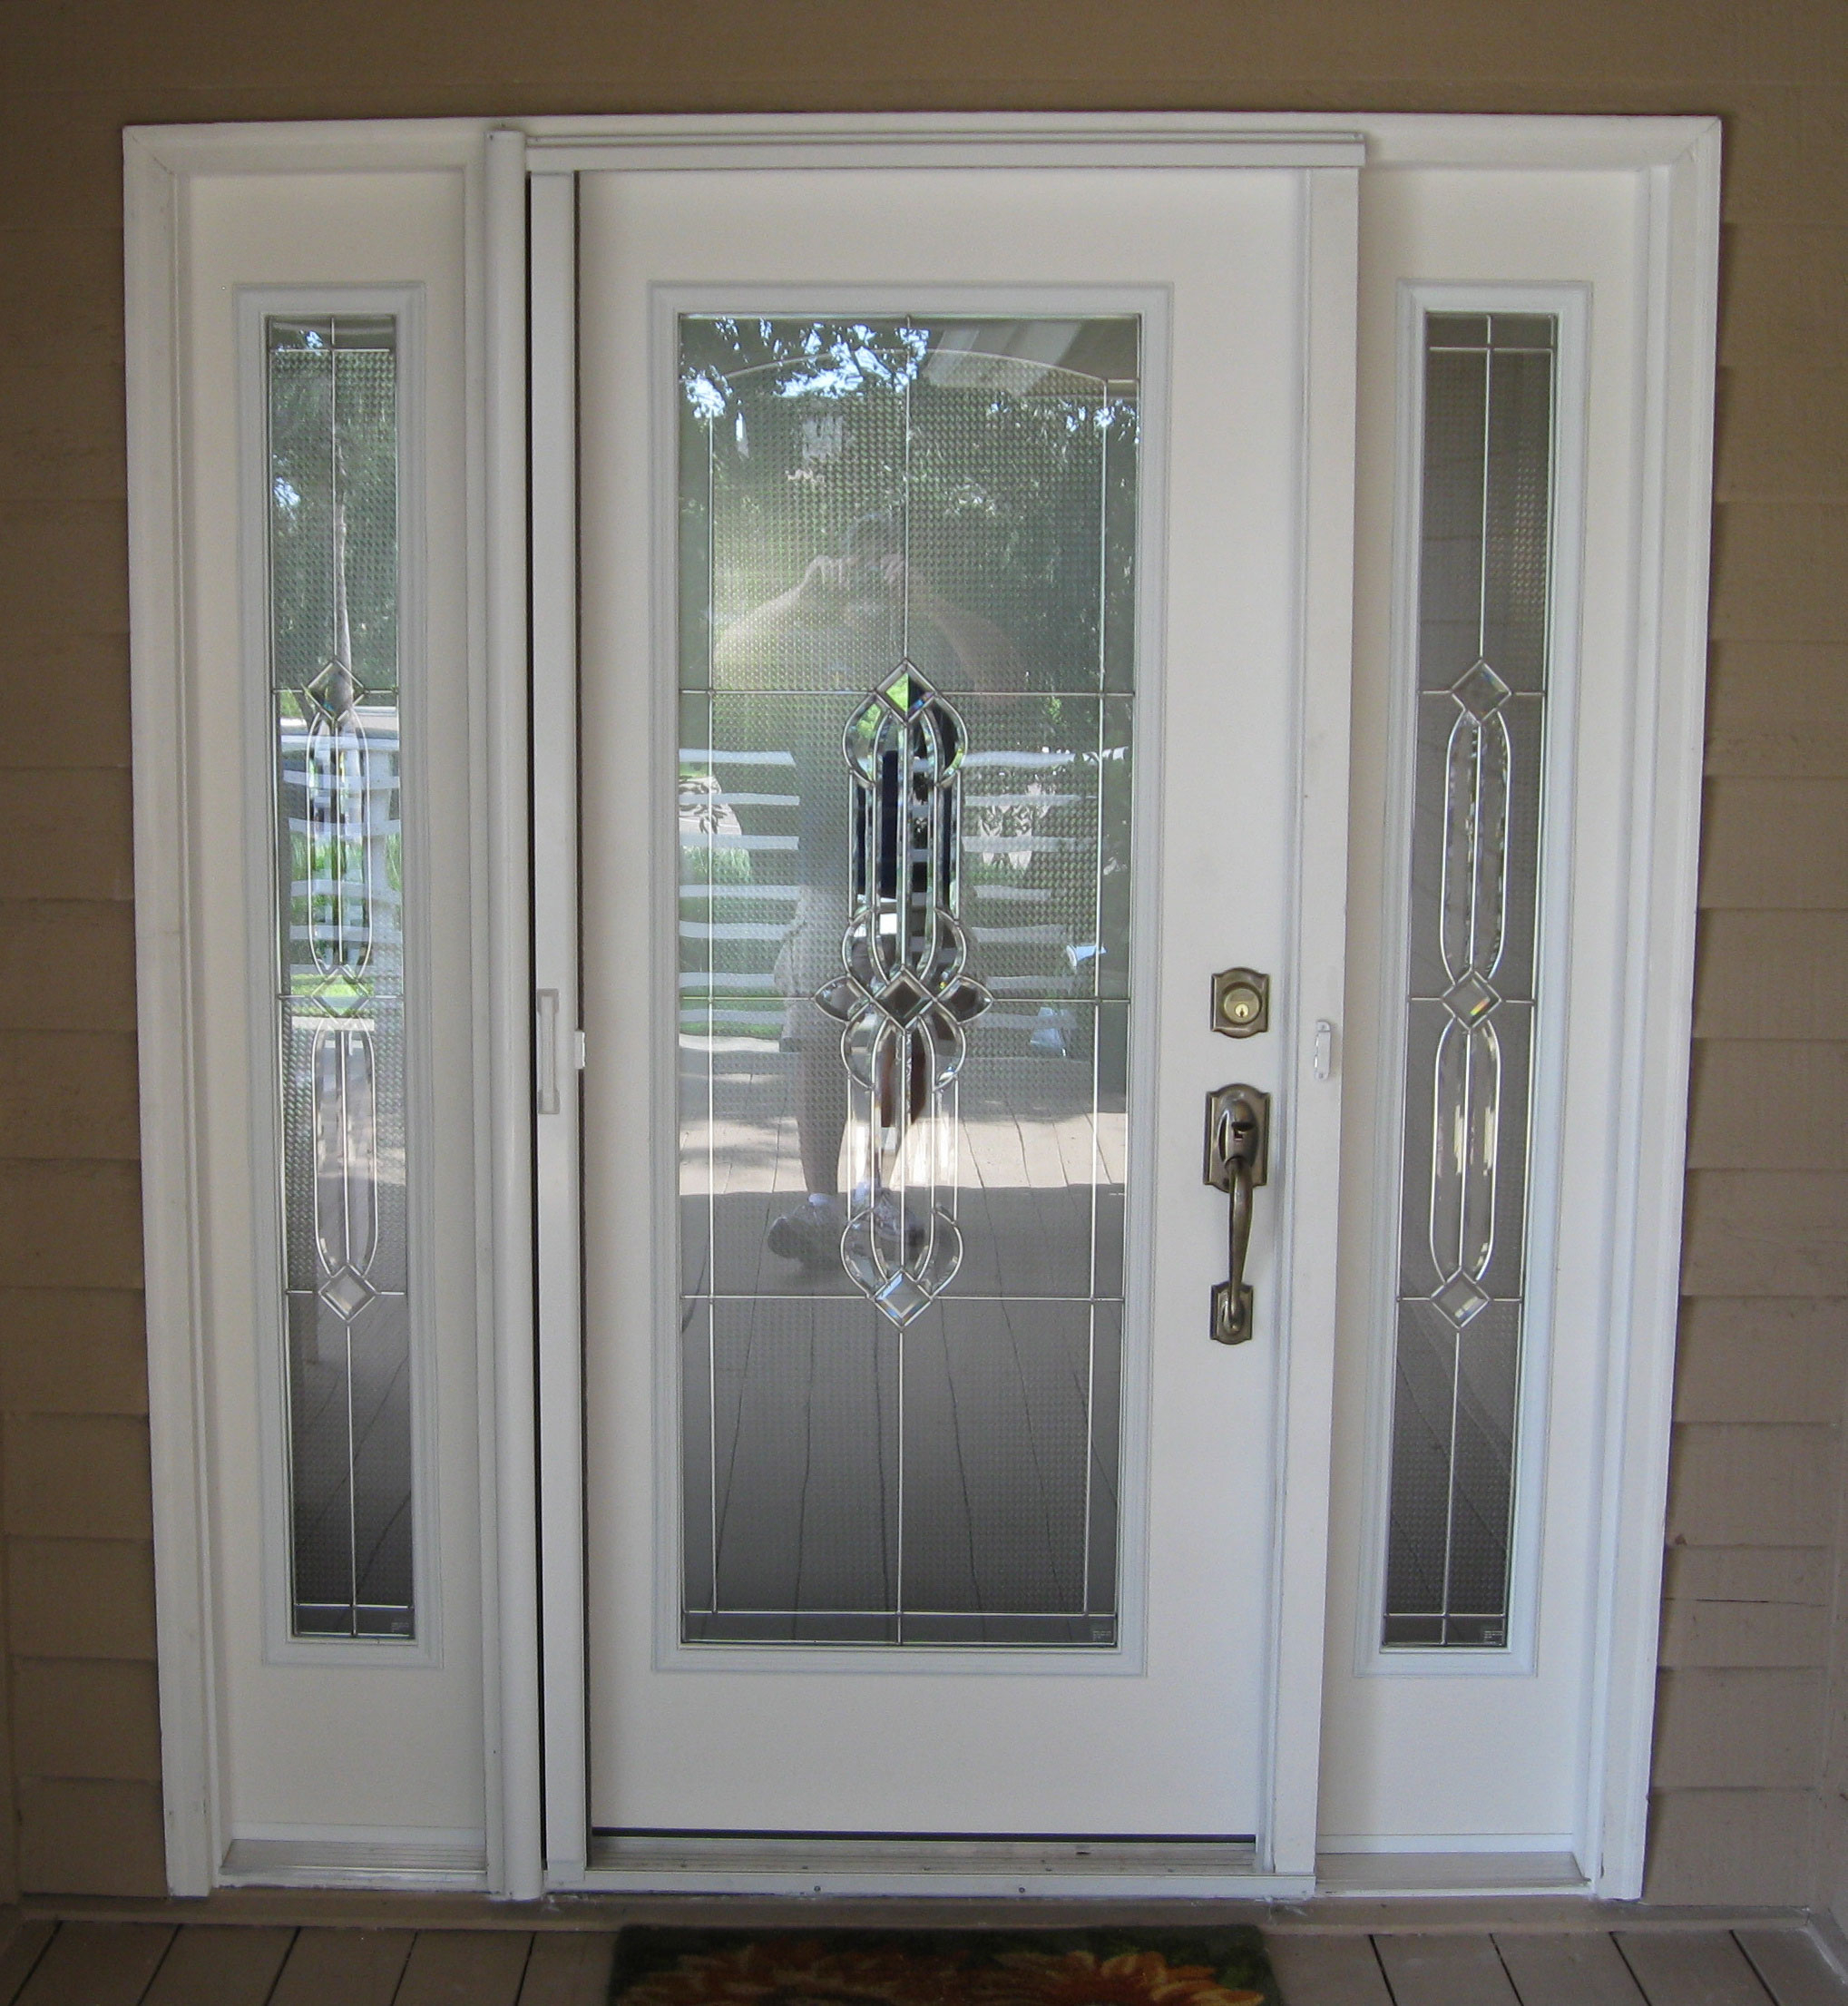 Inserts Frames Windoor Building Supply Mullins South Carolina pertaining to dimensions 2037 X 2211